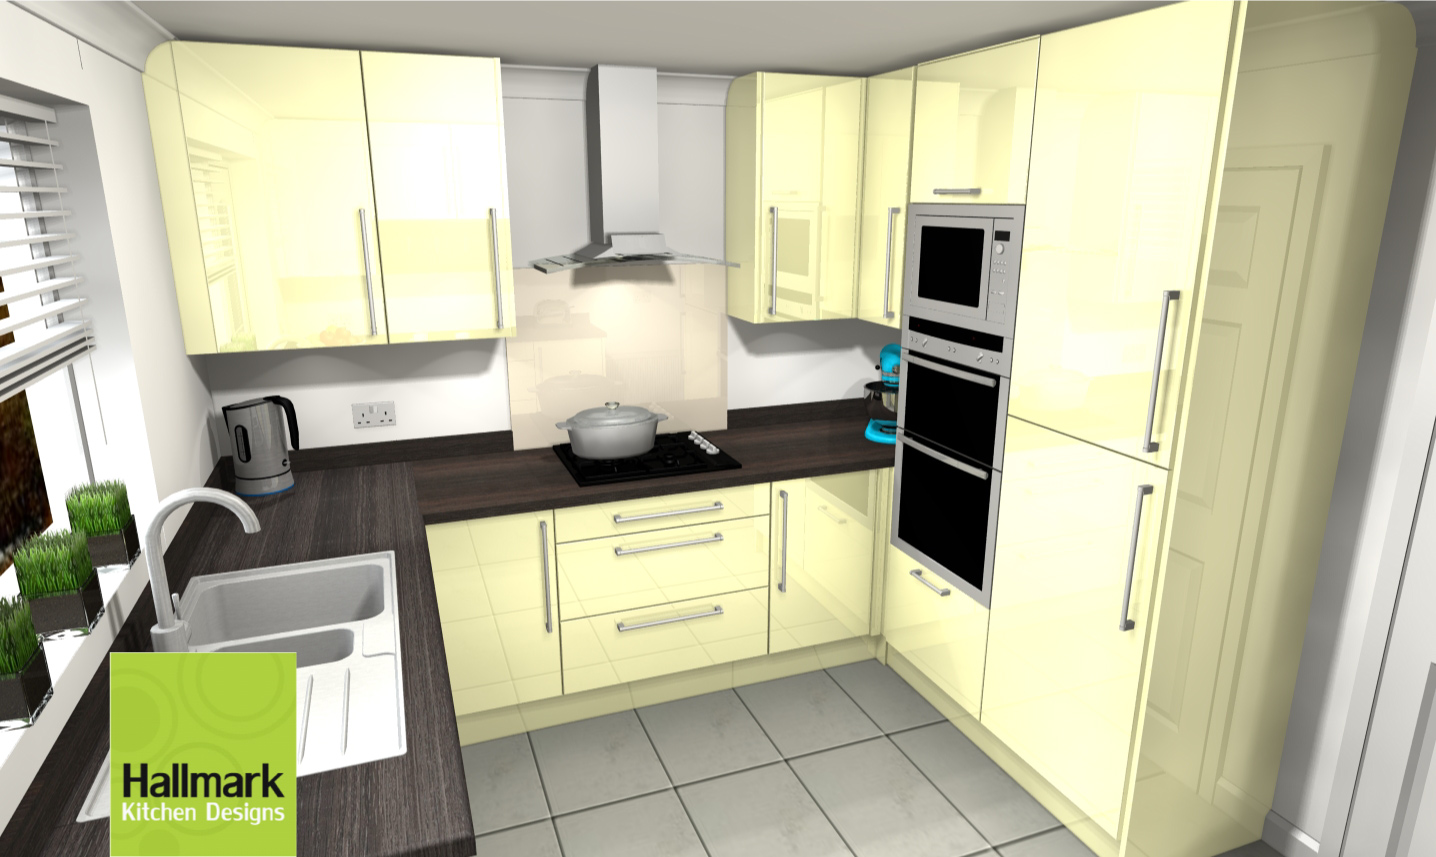 Price Example Up To 8000 Hallmark Kitchen Designs